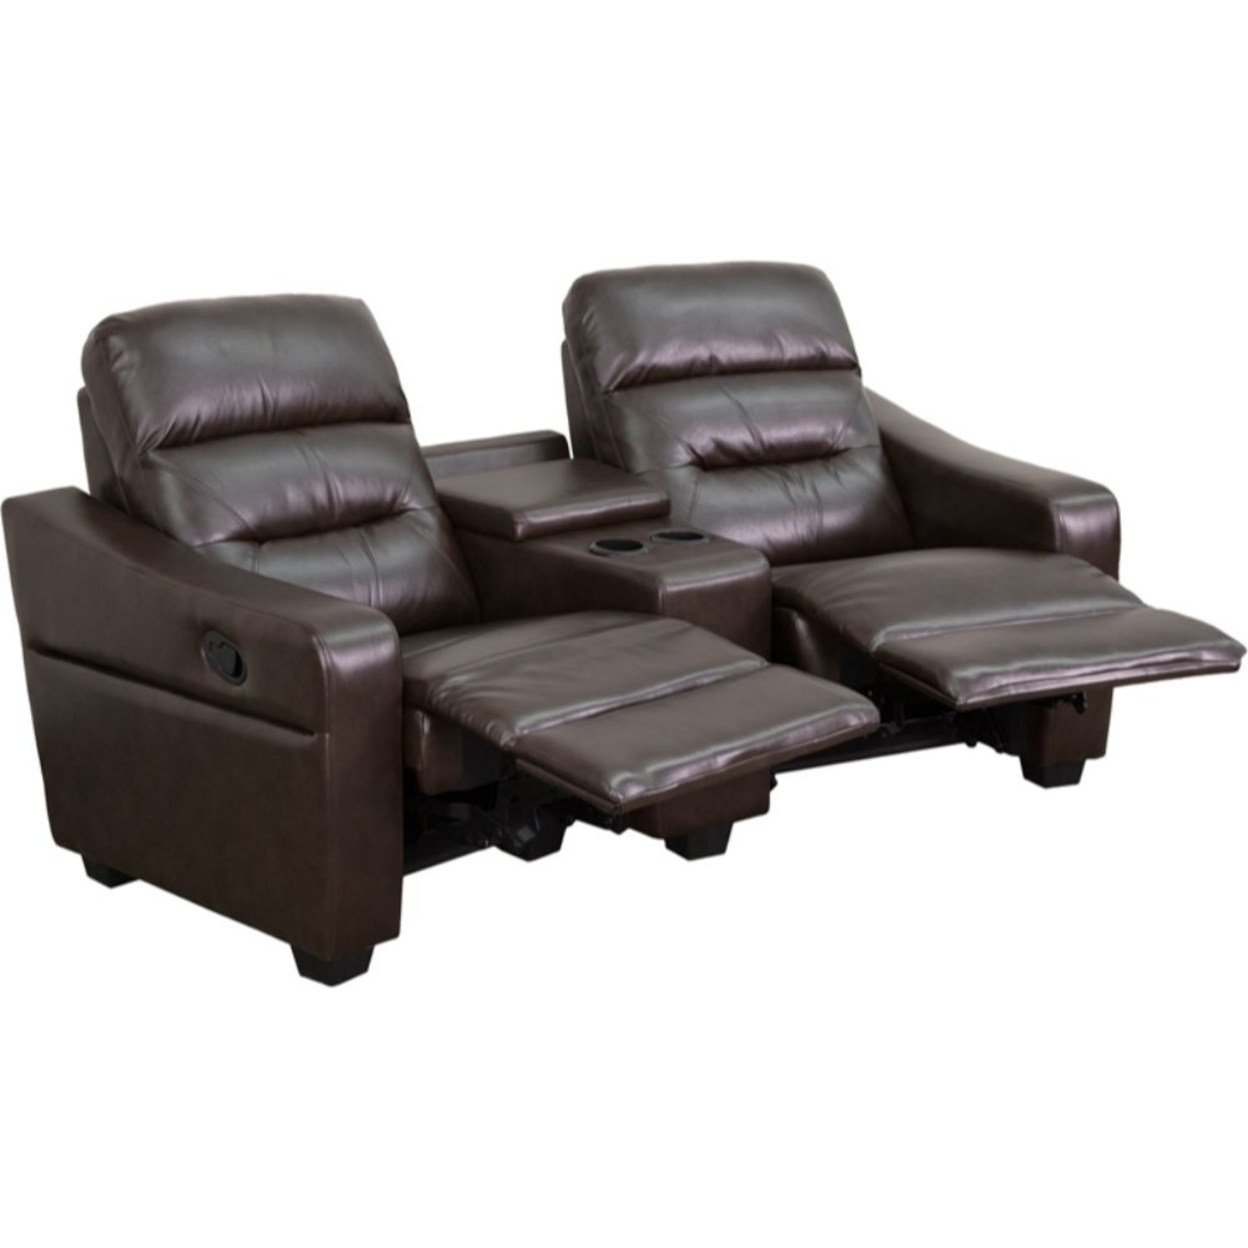 Futura Series 2-Seat Reclining Brown Leather Theater Seating Unit with Cup Holders 589954dac98fc433fe5a1614